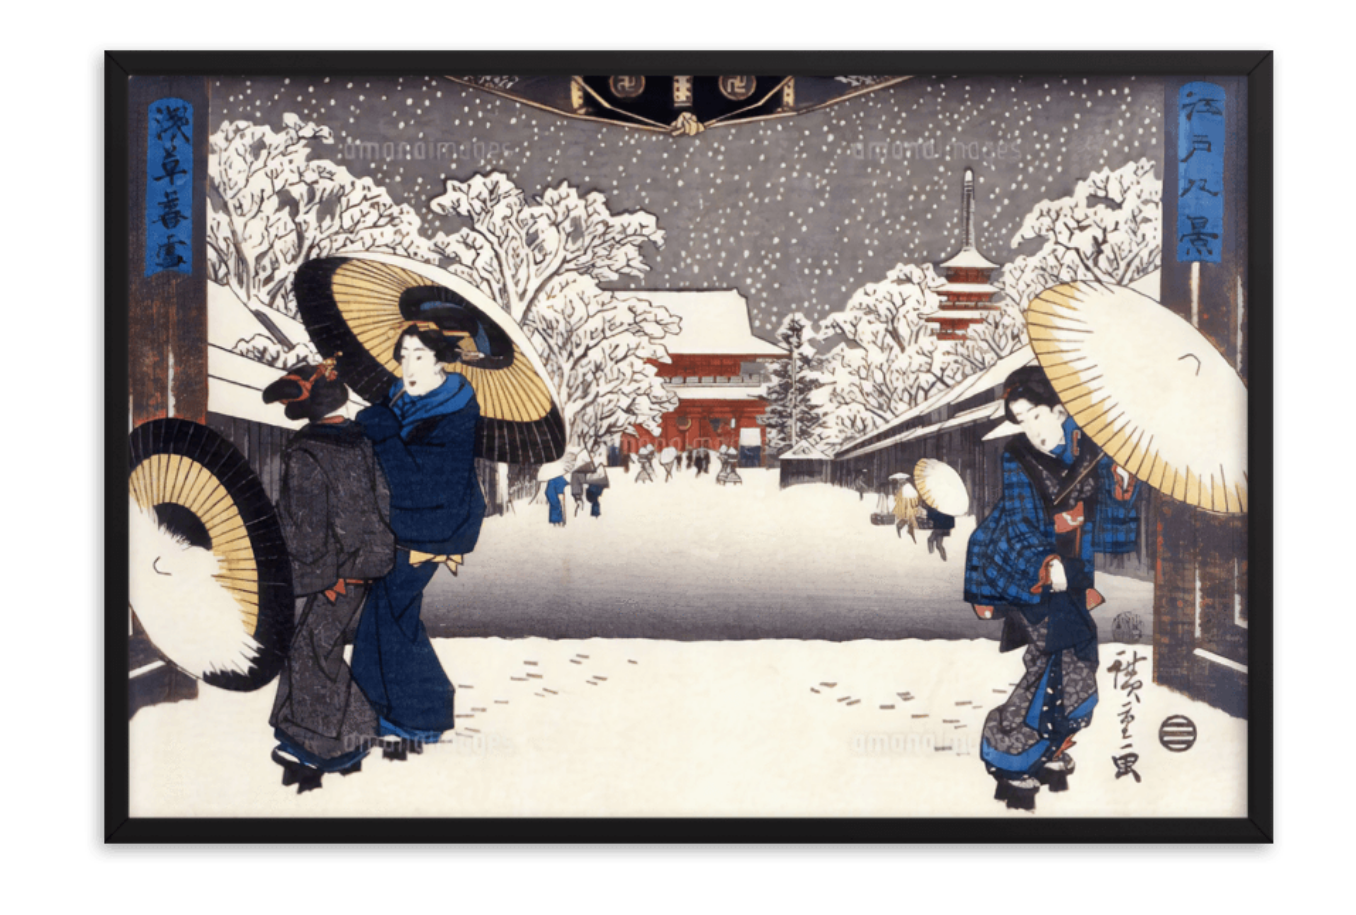 Evening Snow at Asakusa by Hiroshige